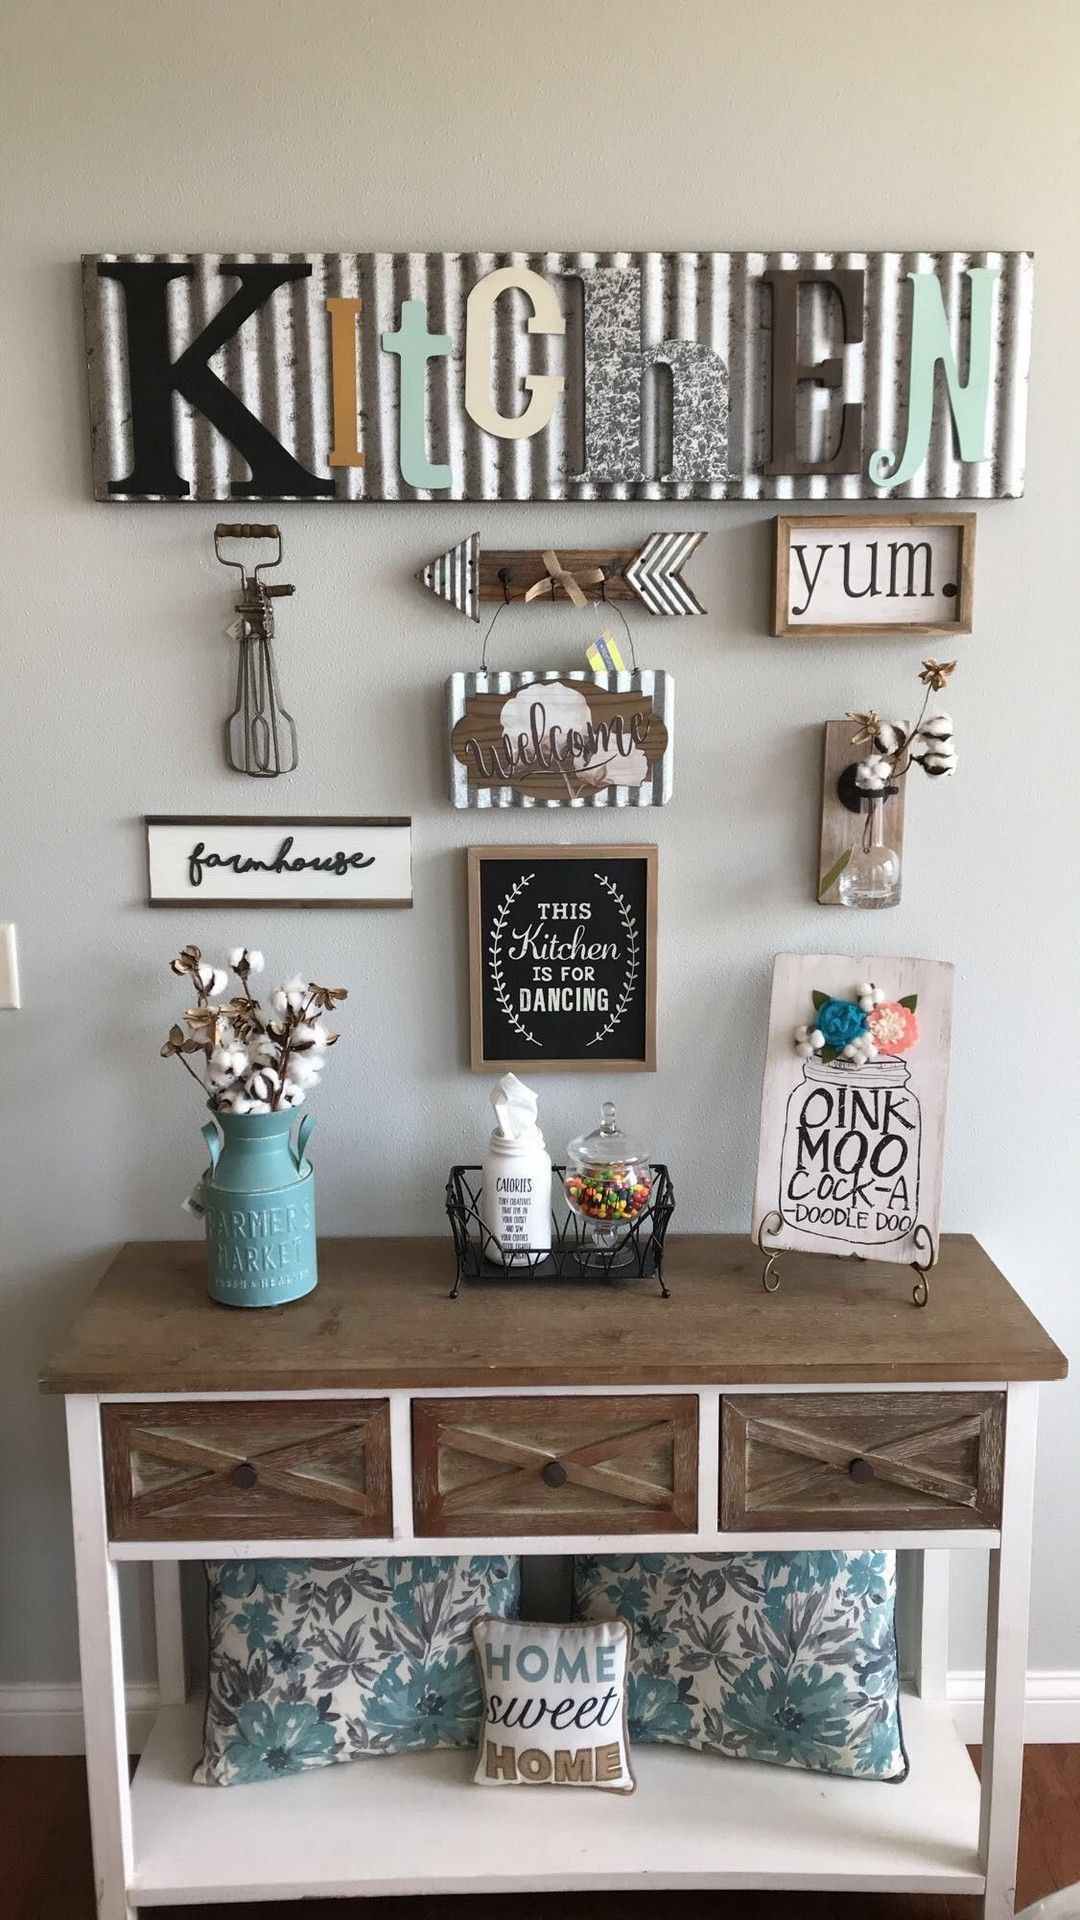 20 Clever Ways To Organize Farmhouse Kitchen Decorations Https Kitchendecorpad Com 2018 11 06 Farmhouse Kitchen Decor Farmhouse Wall Decor Kitchen Wall Decor